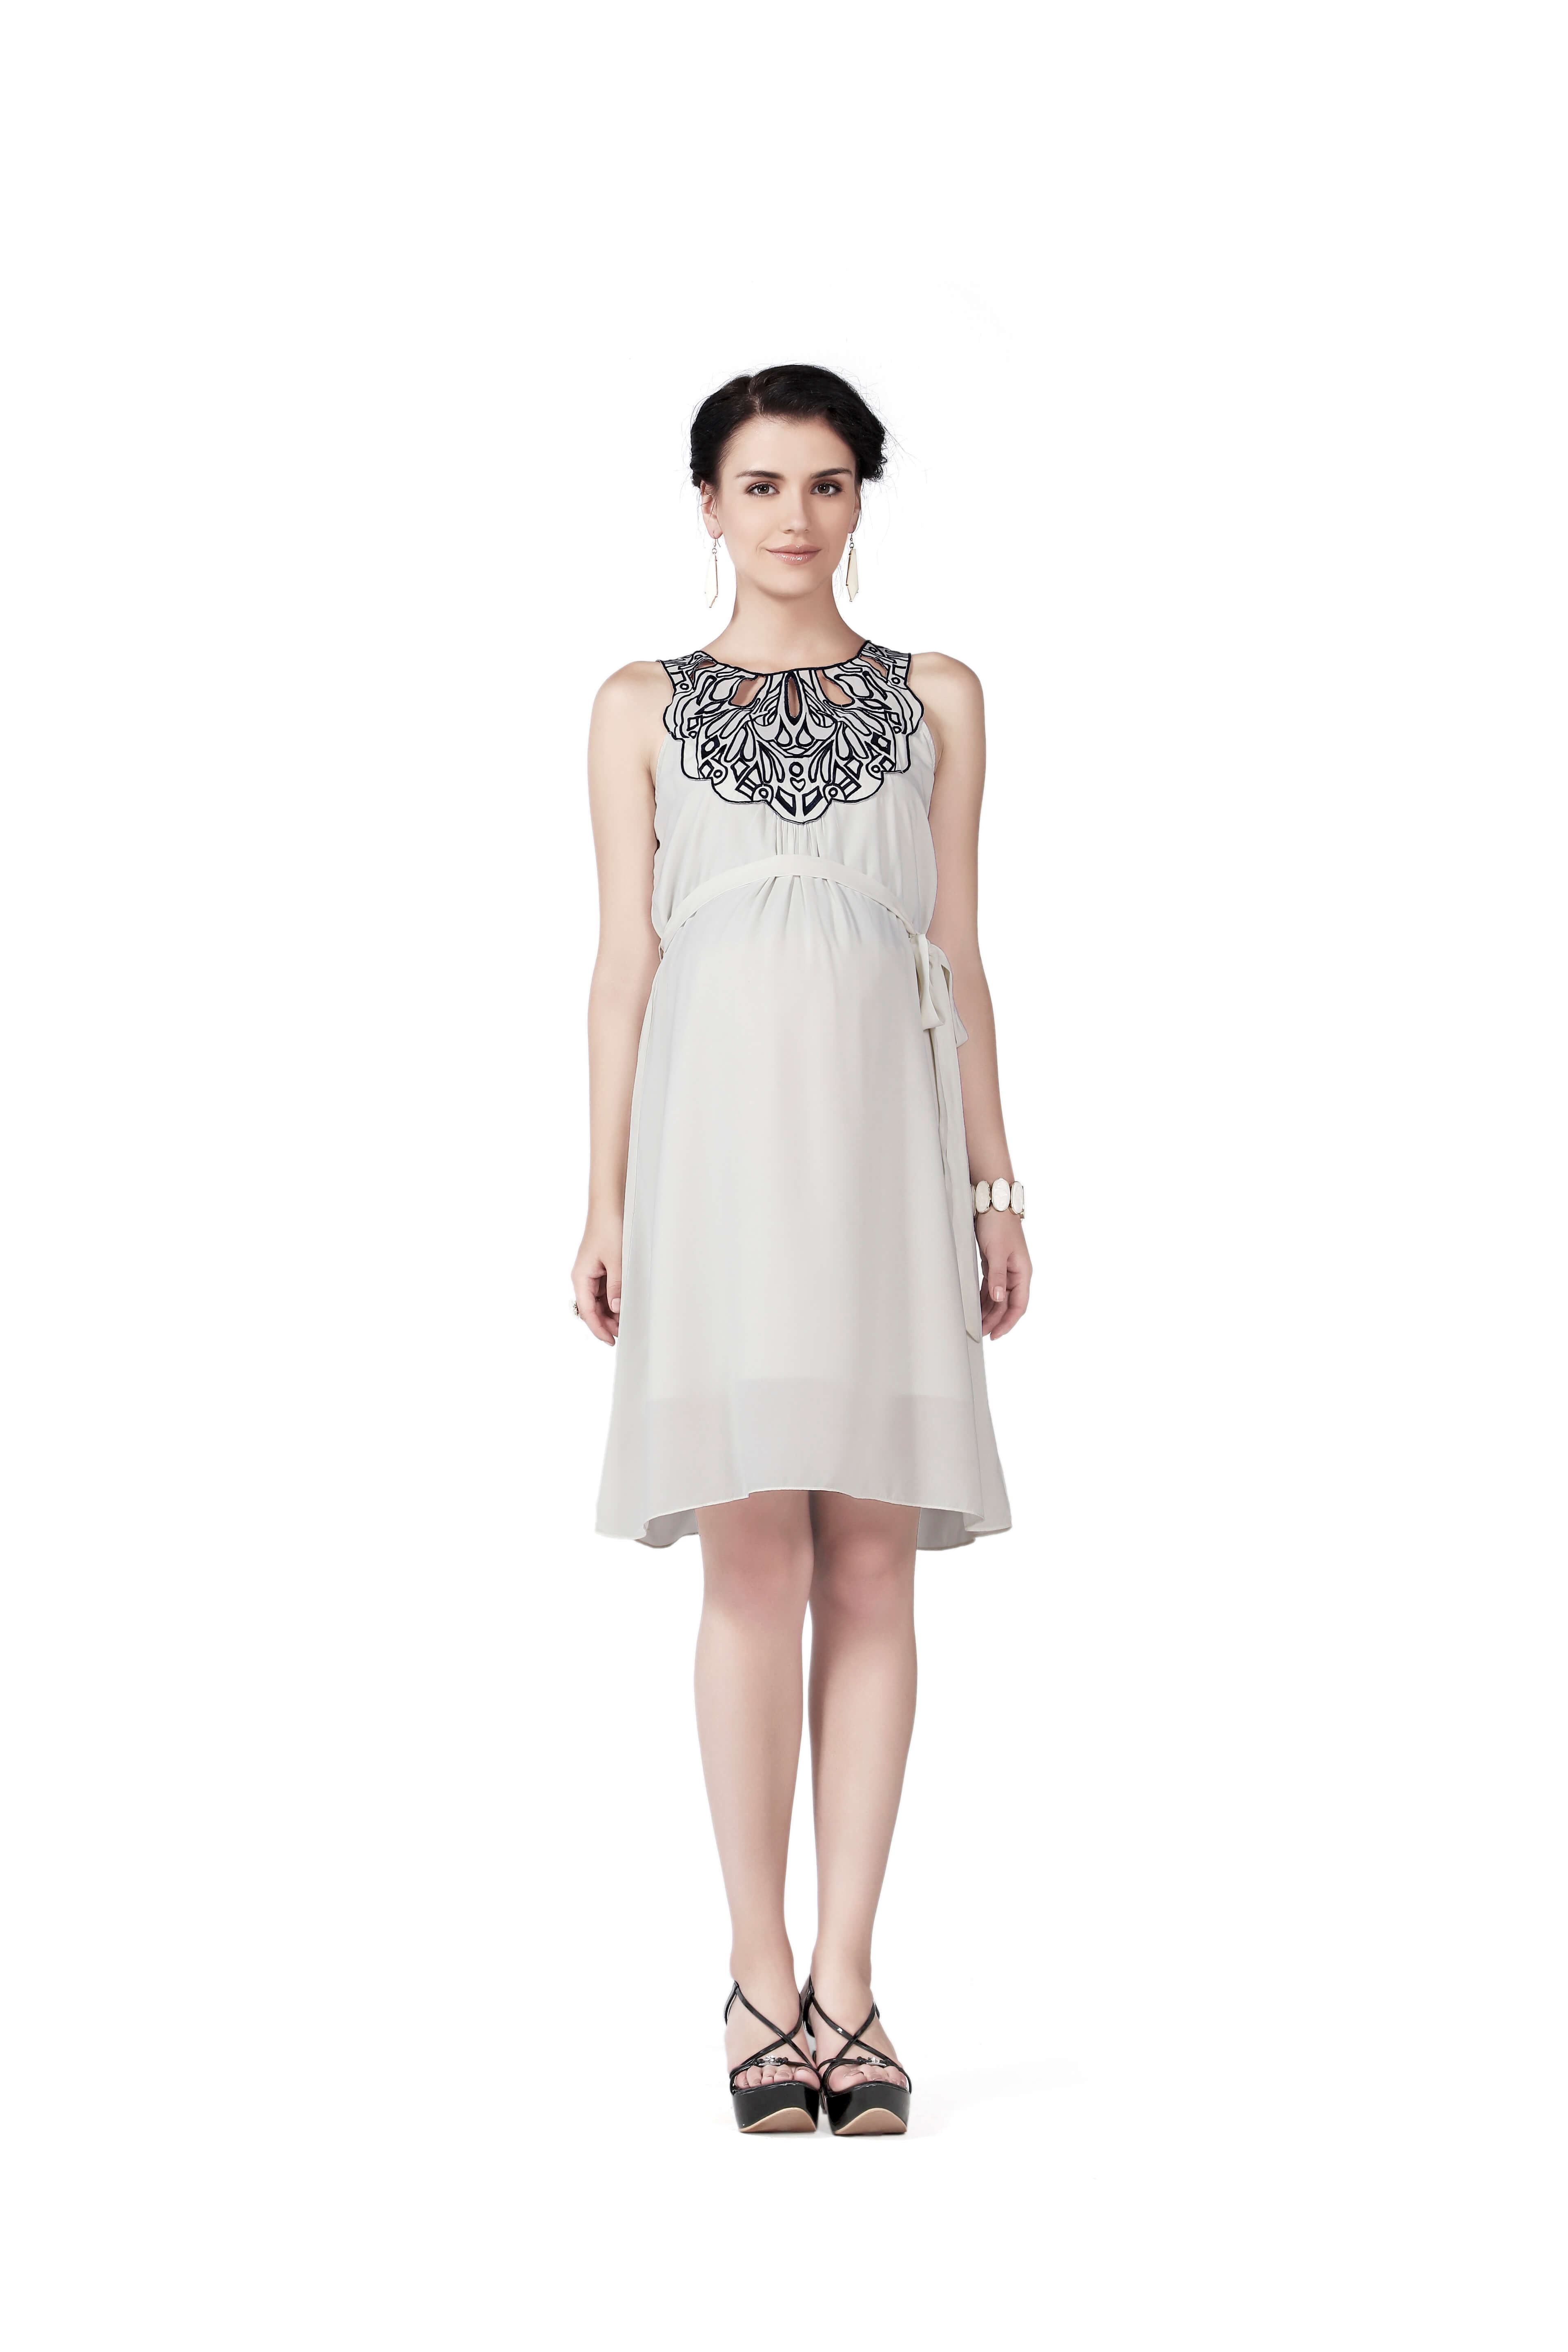 605d9f29cf9 House of Napius - Cutwork Maternity Dress - Off White